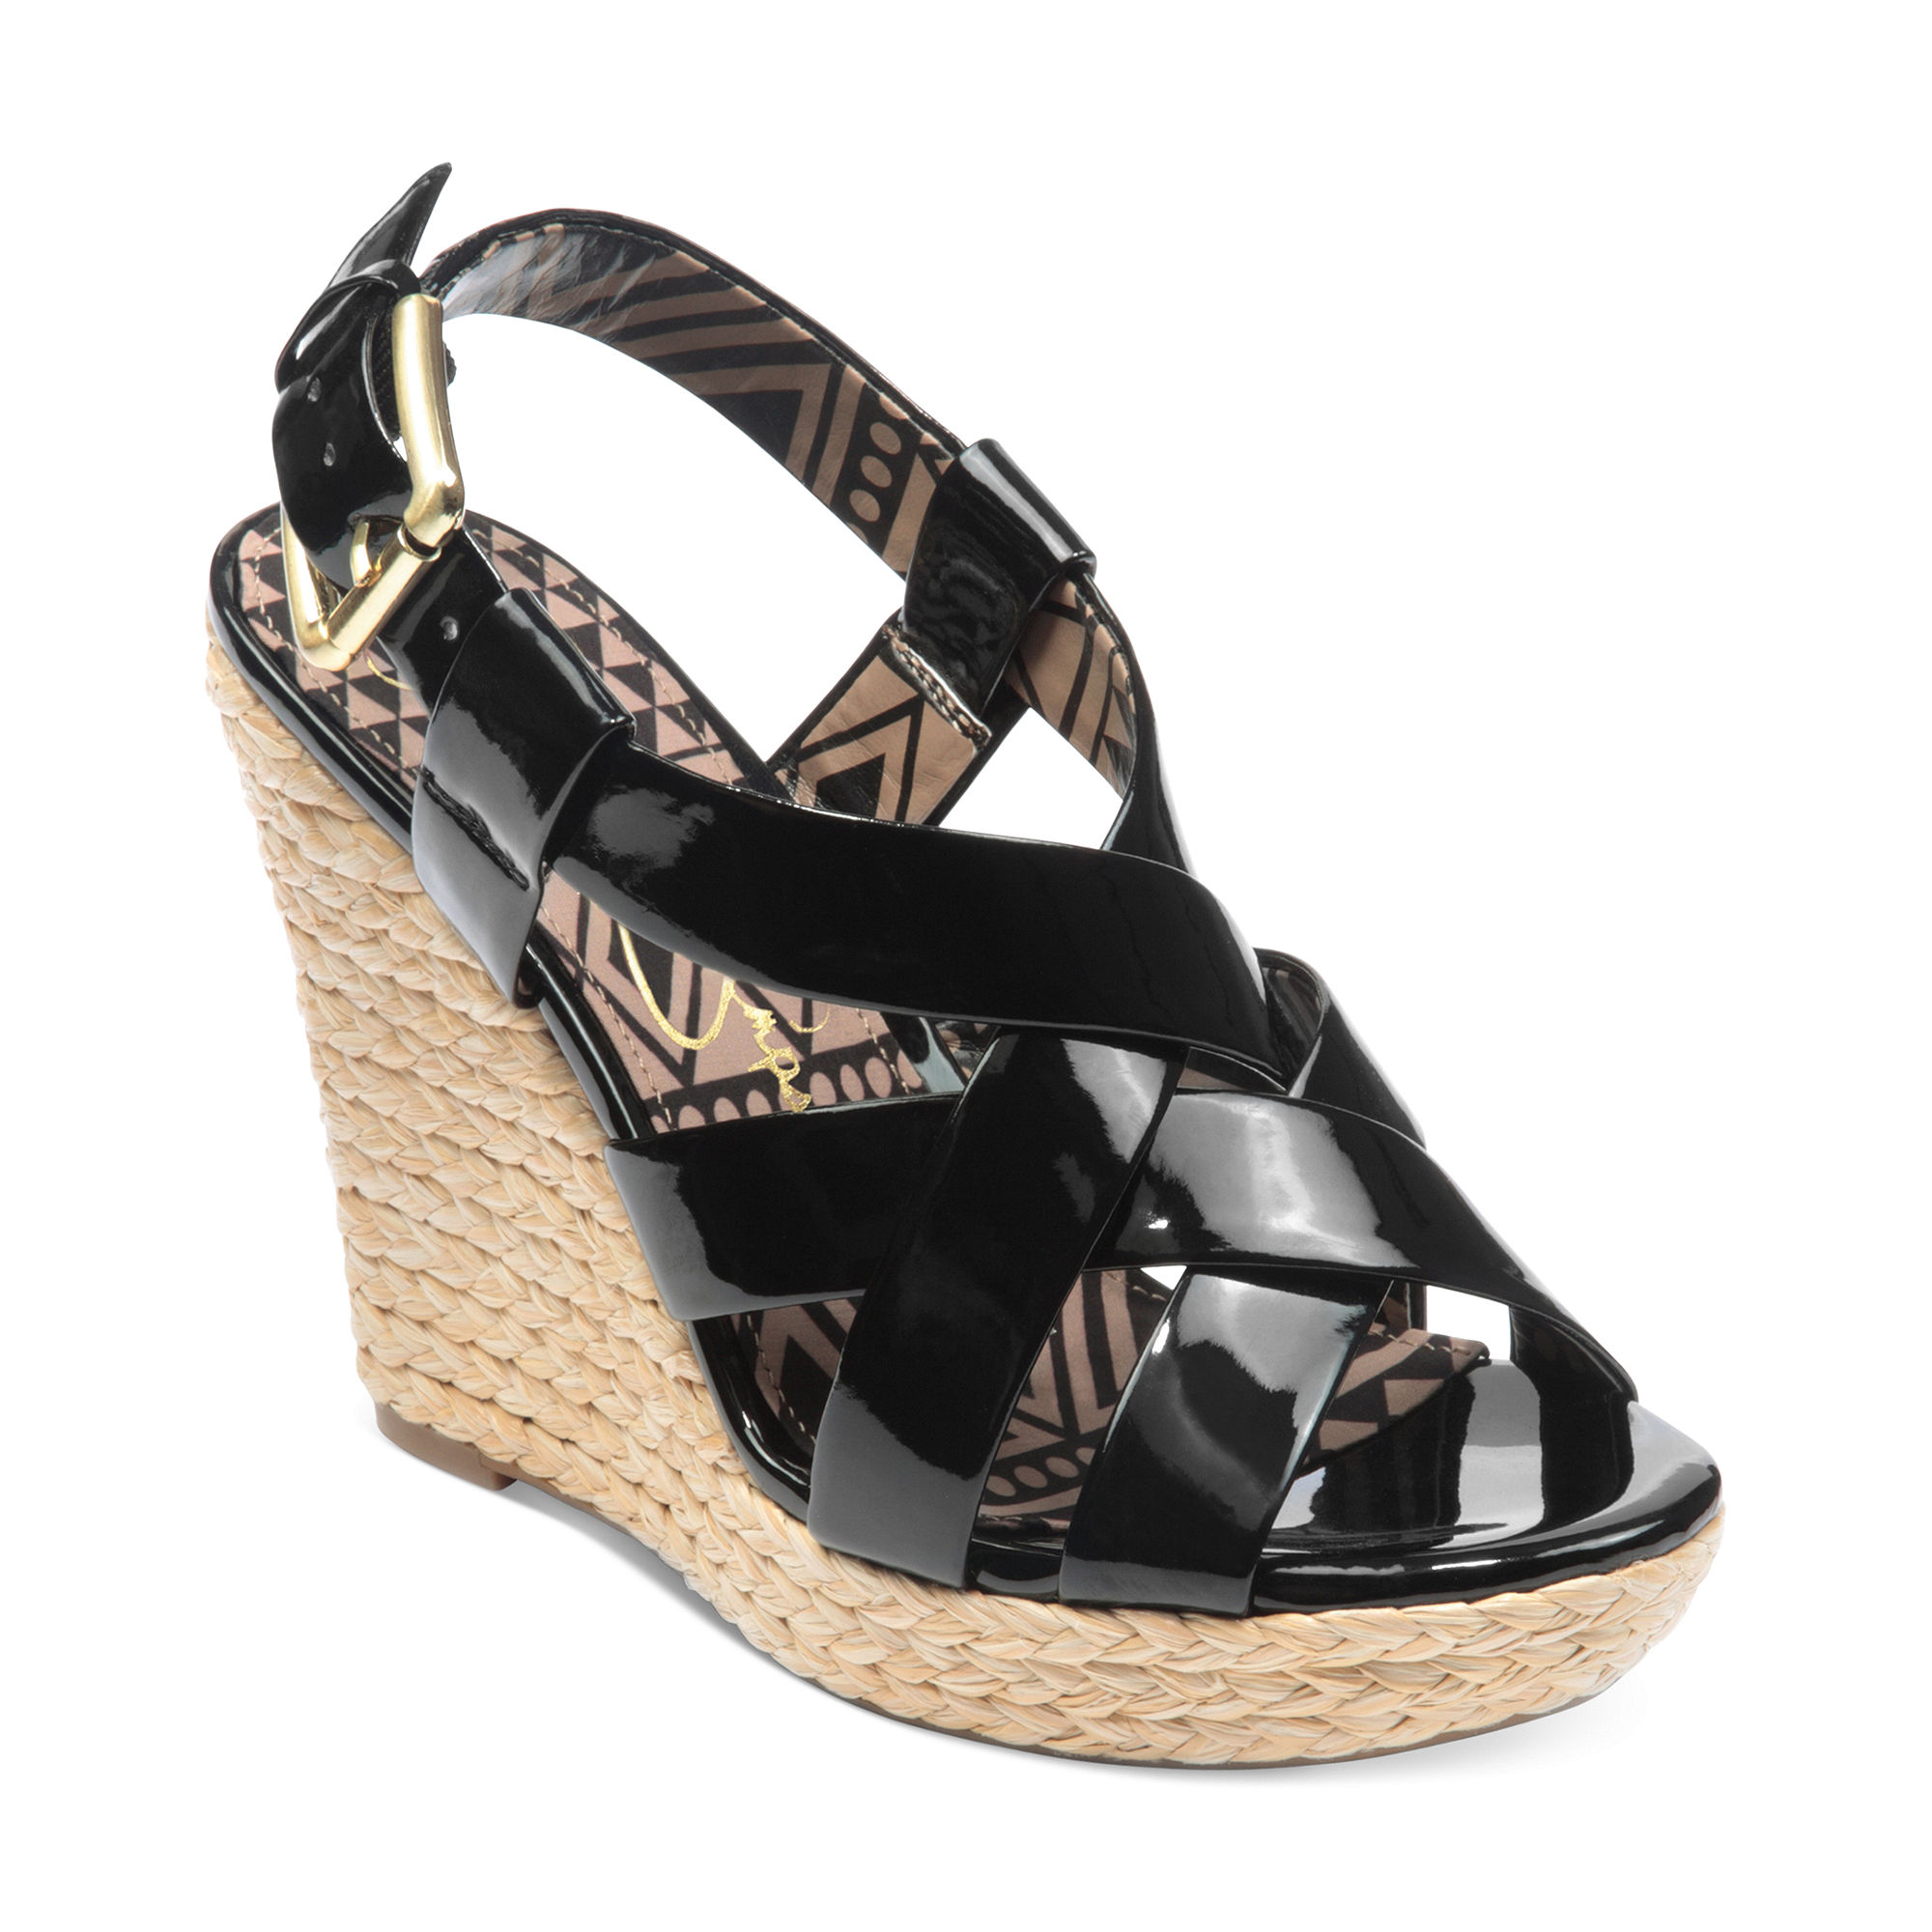 Jessica Simpson Catalina Platform Wedge Sandals In Black